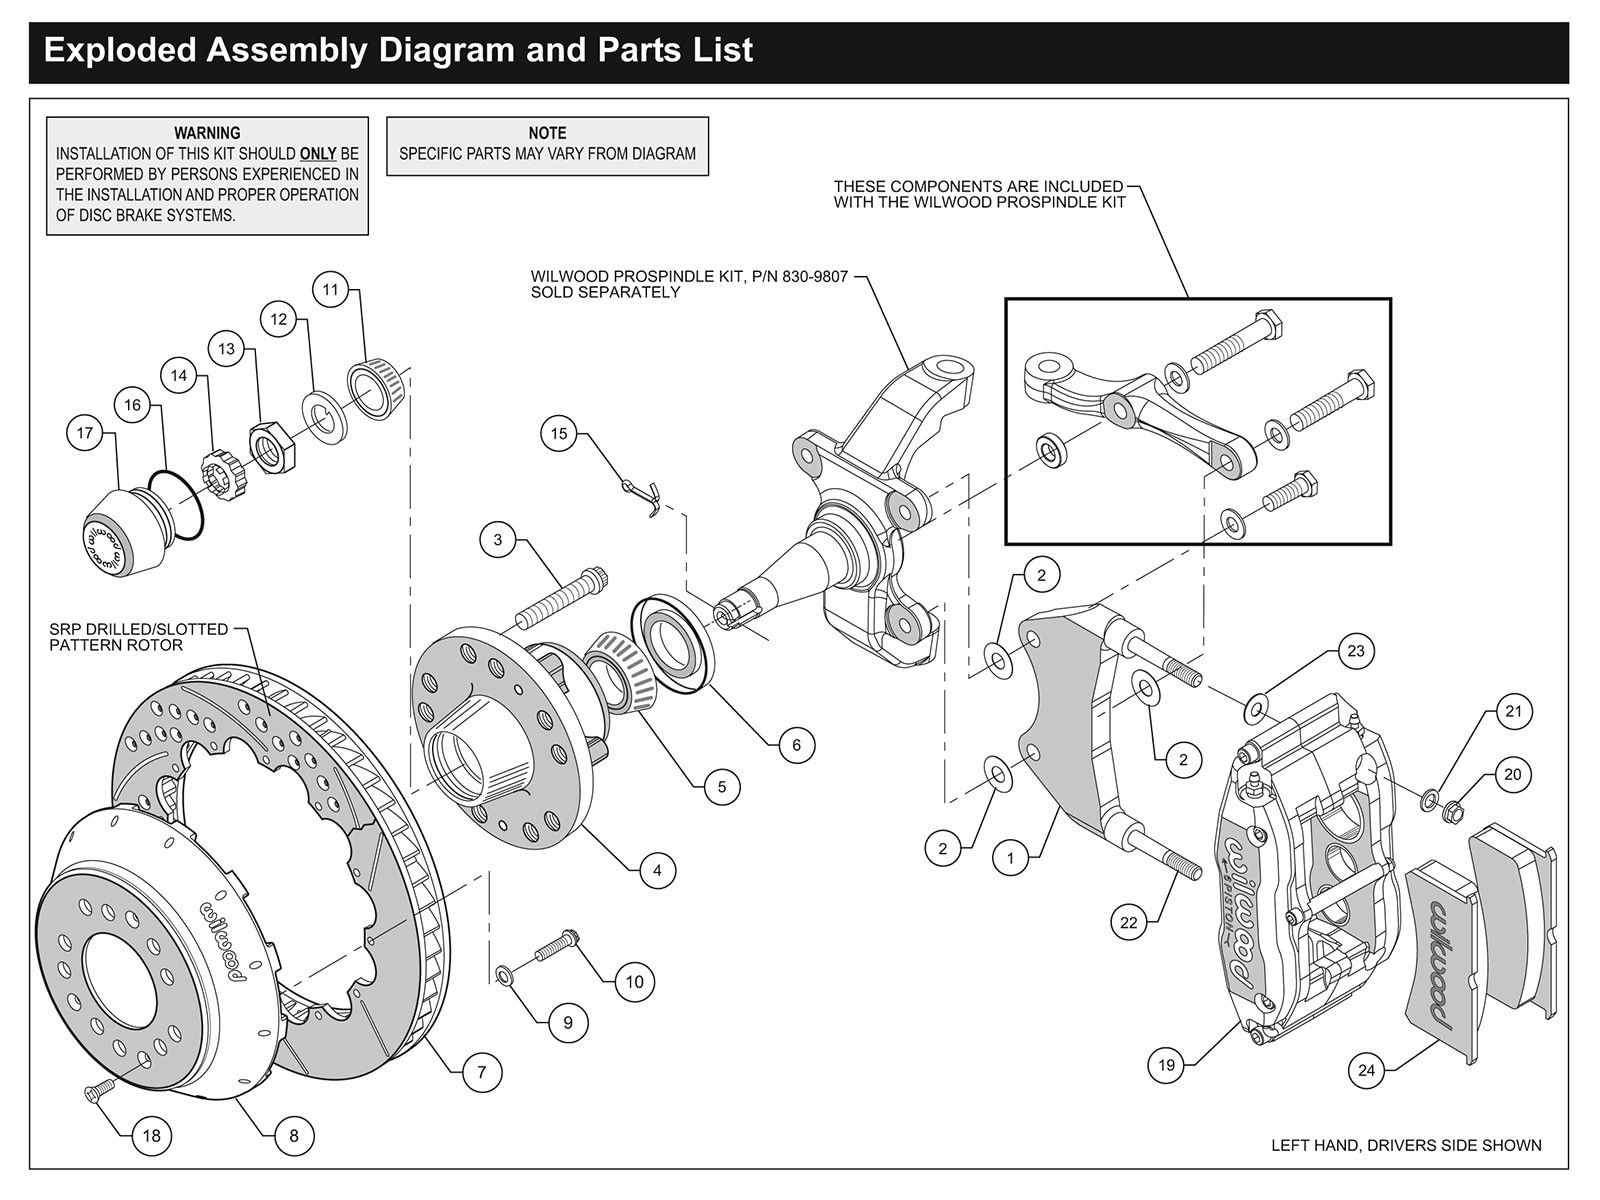 Car Brake assembly Diagram How to Install Wilwood Disc Brakes Hot Rod Network Of Car Brake assembly Diagram